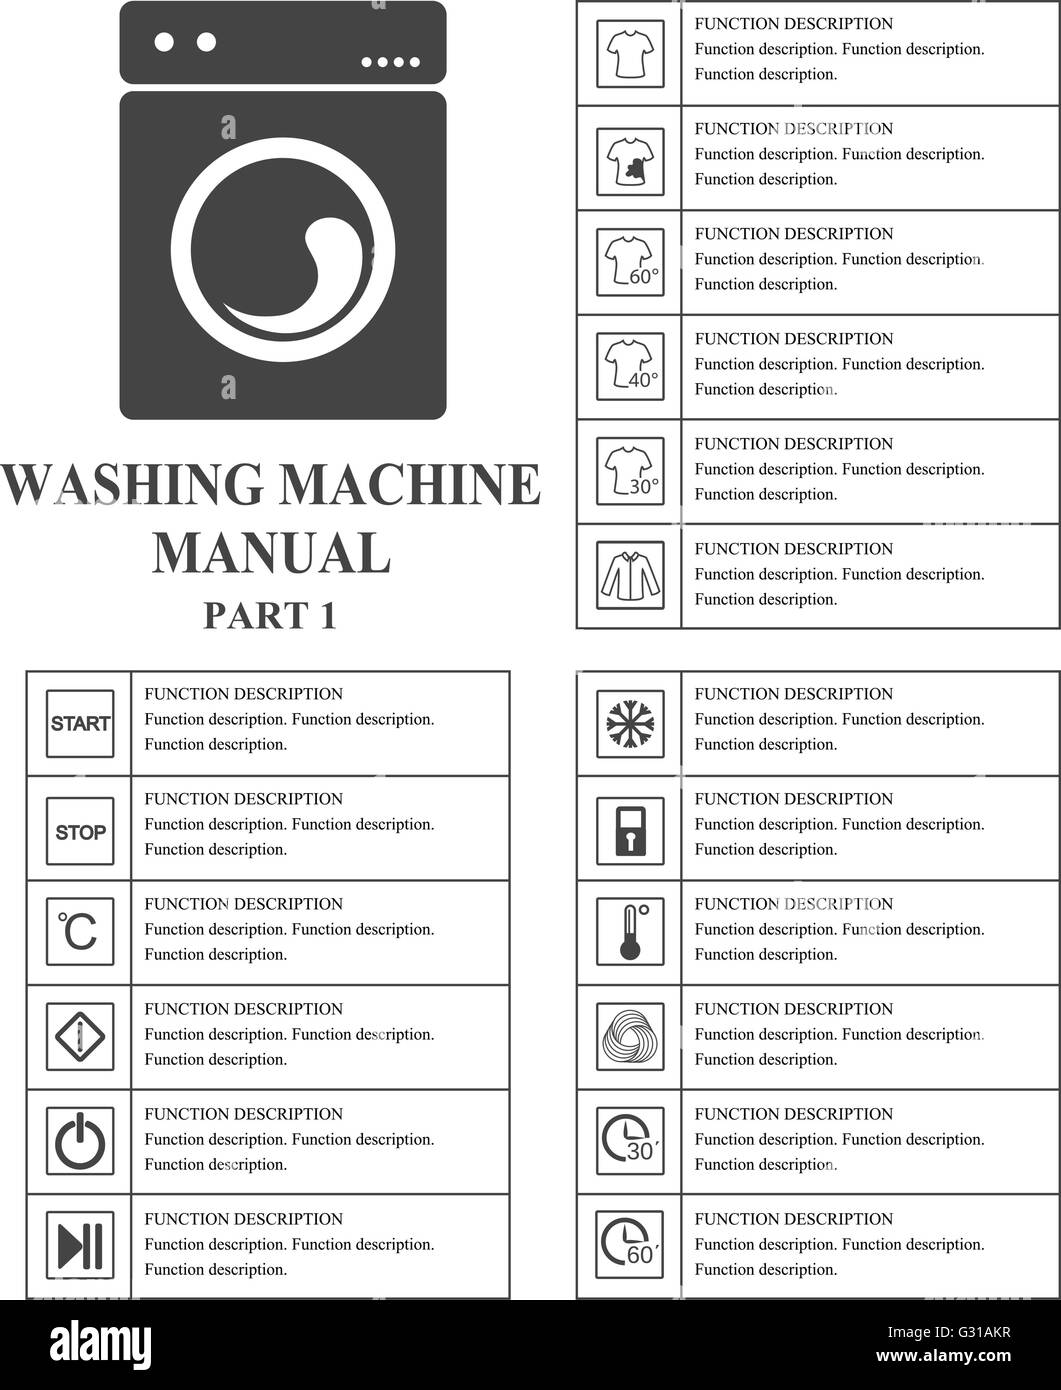 Oven manual symbols part 1 instructions signs and symbols for oven manual symbols part 1 instructions signs and symbols for washing machine exploitation manual instructions and function d biocorpaavc Image collections